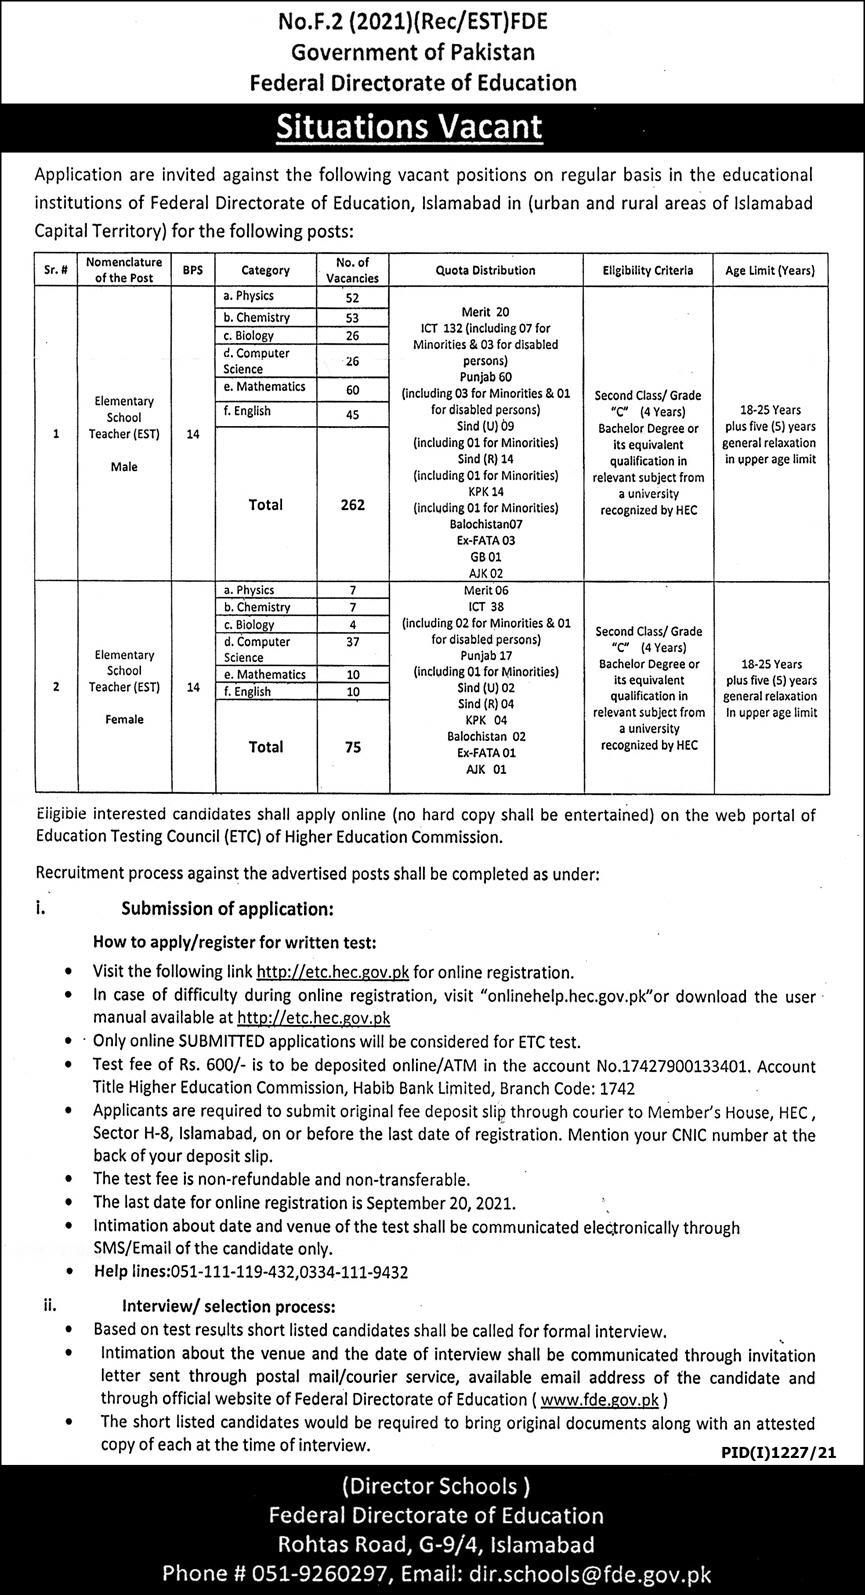 Federal Directorate of Education Jobs 2021 | Govt Of Pakistan Islamabad Advertisement